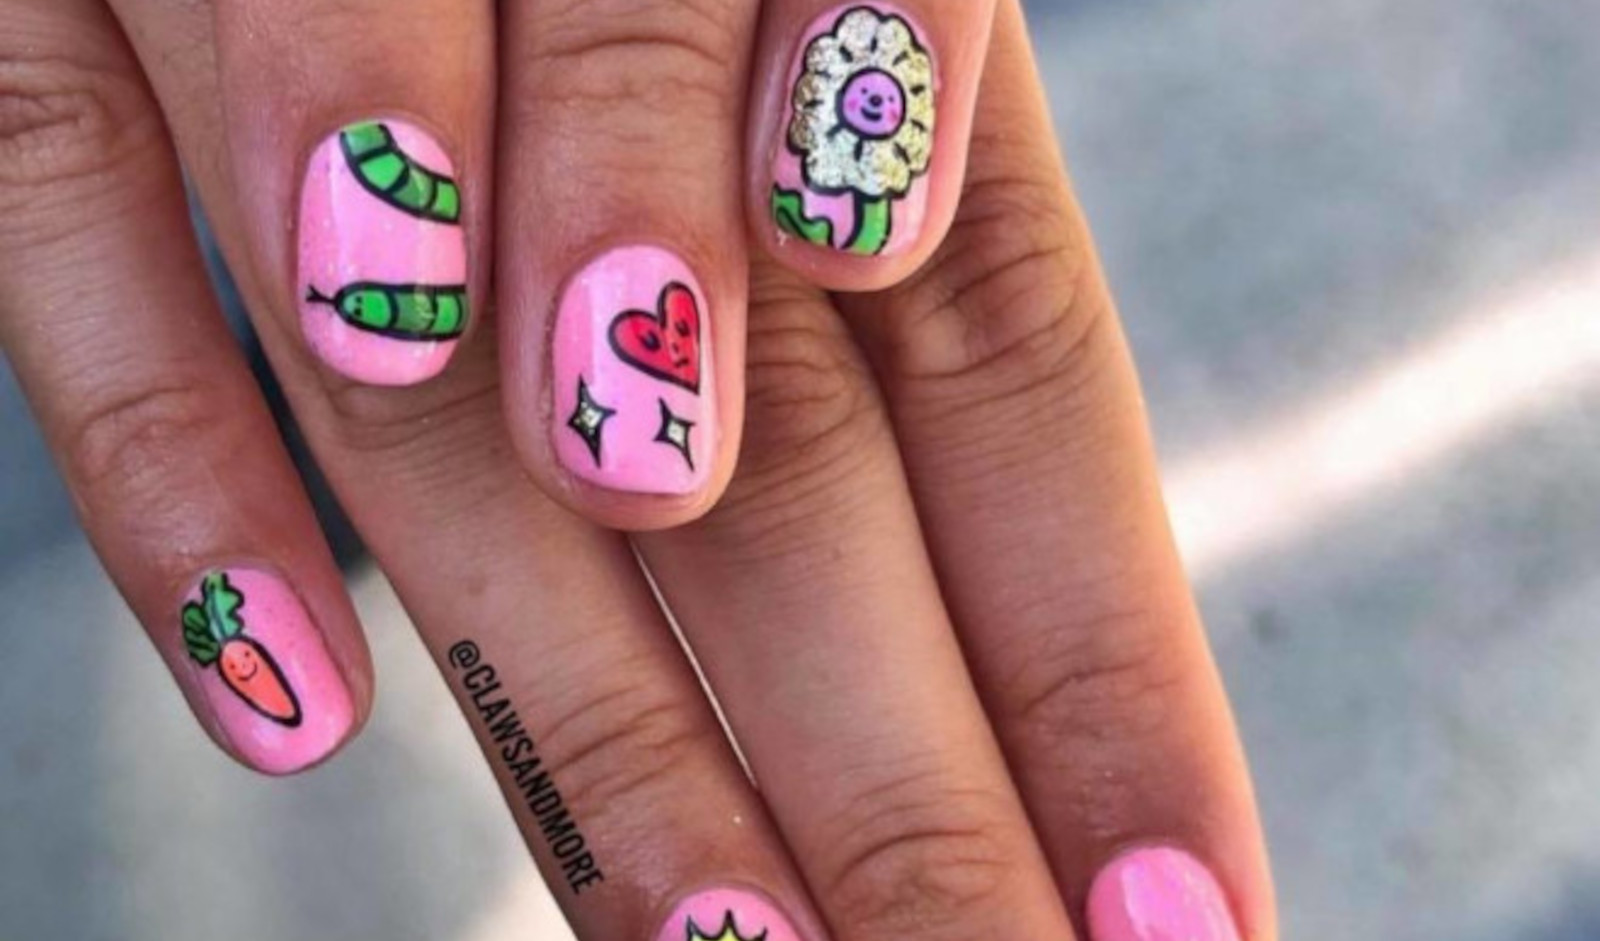 Pink Nails Are Taking Over the Internet- Here Are The Best Pink Nail Designs to Recreate